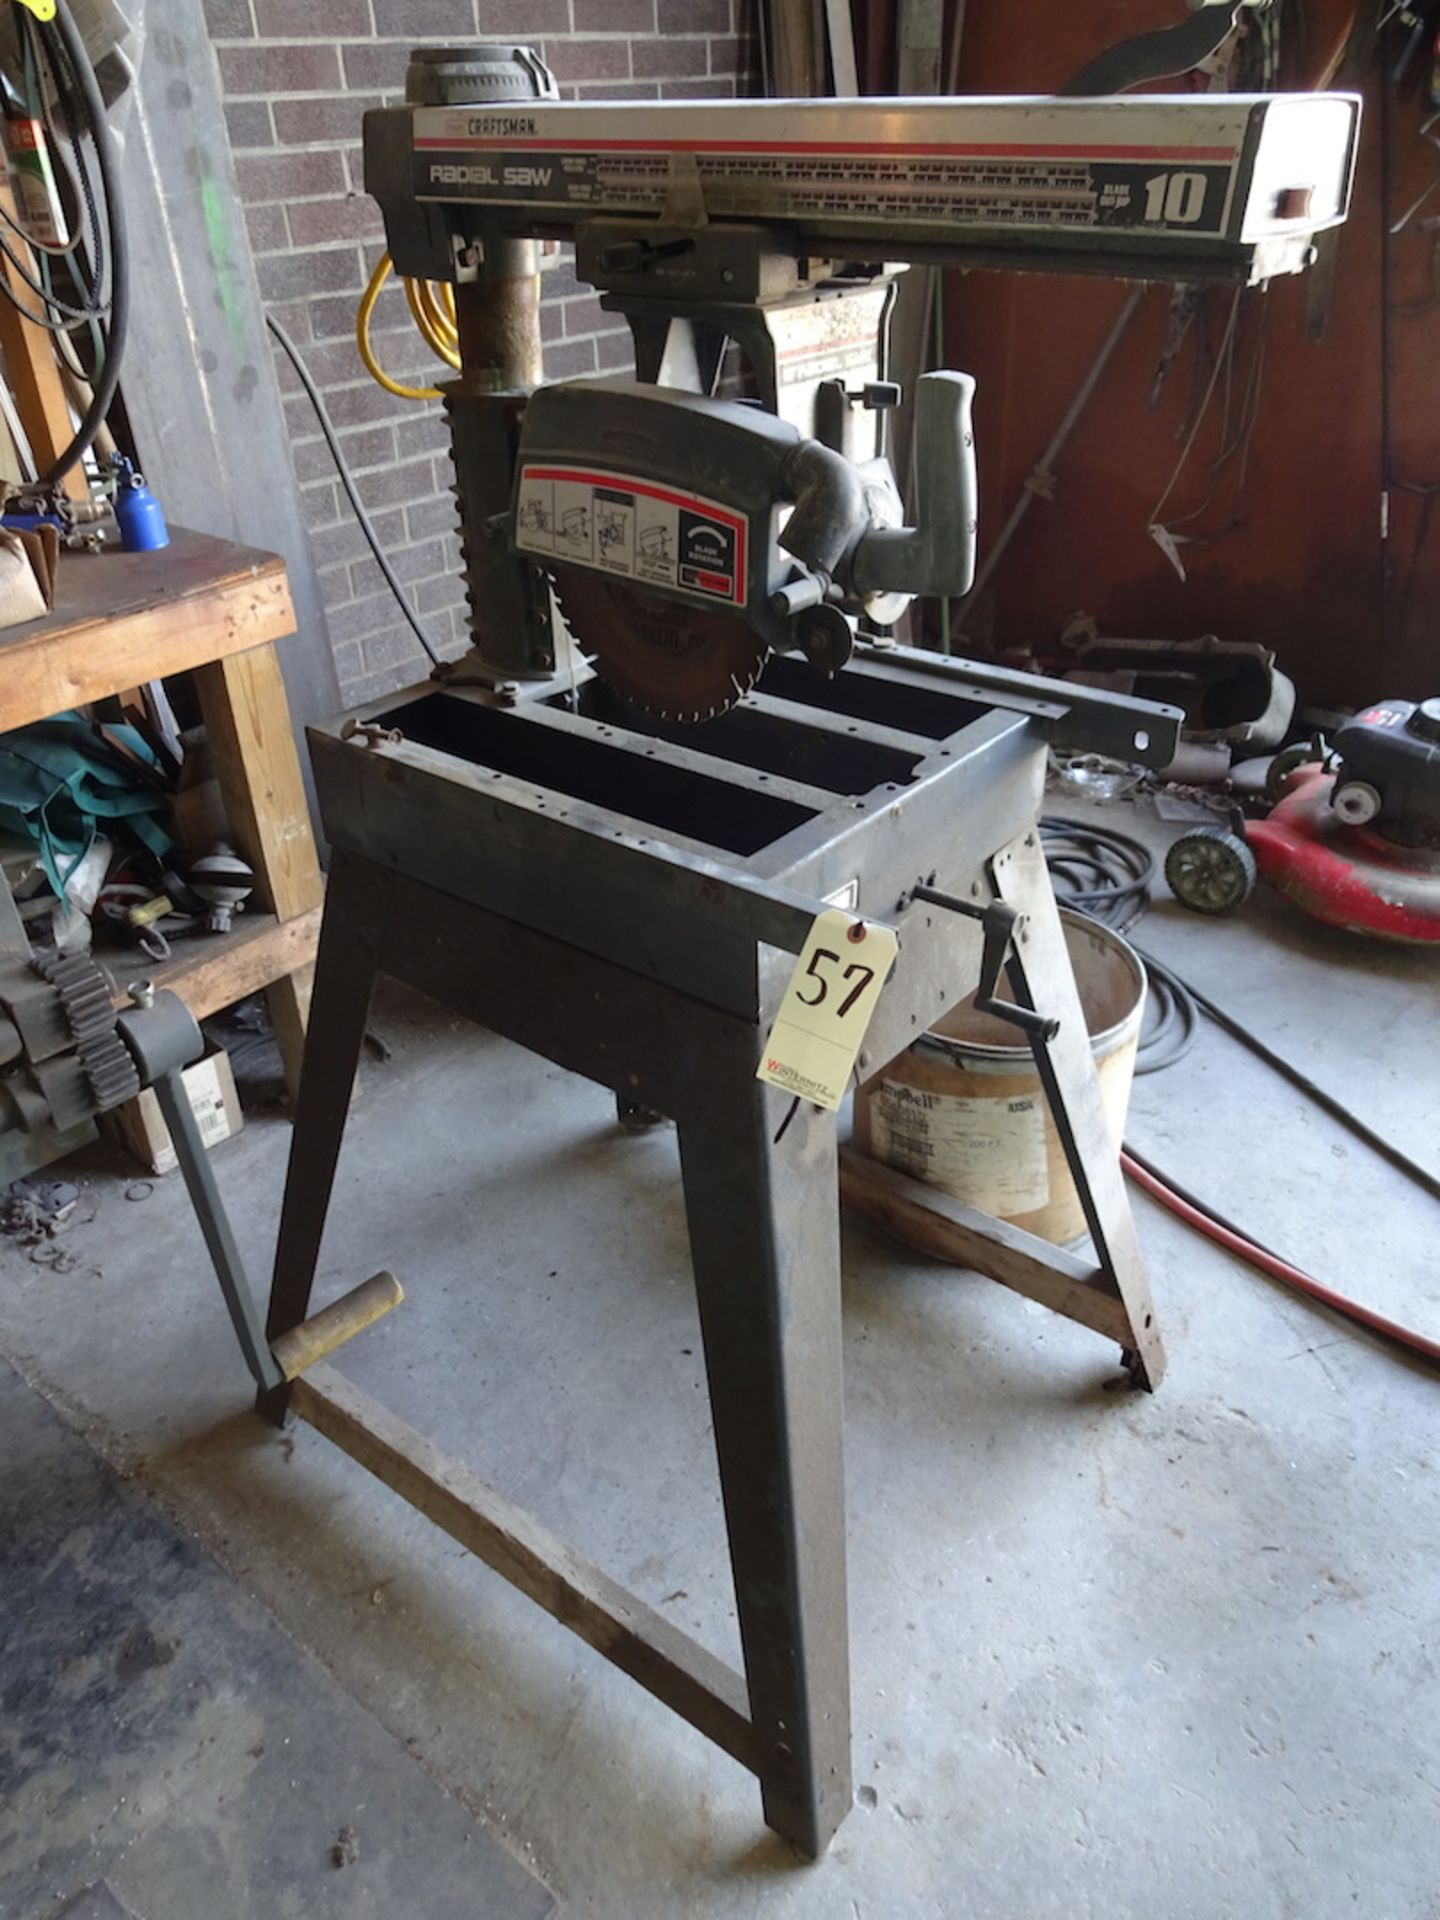 """Lot 57 - CRAFTSMAN 10"""" RADIAL ARM SAW, MODEL 113.197751, S/N: 0058 M0228, SINGLE PHASE, TO TABLE TOP"""